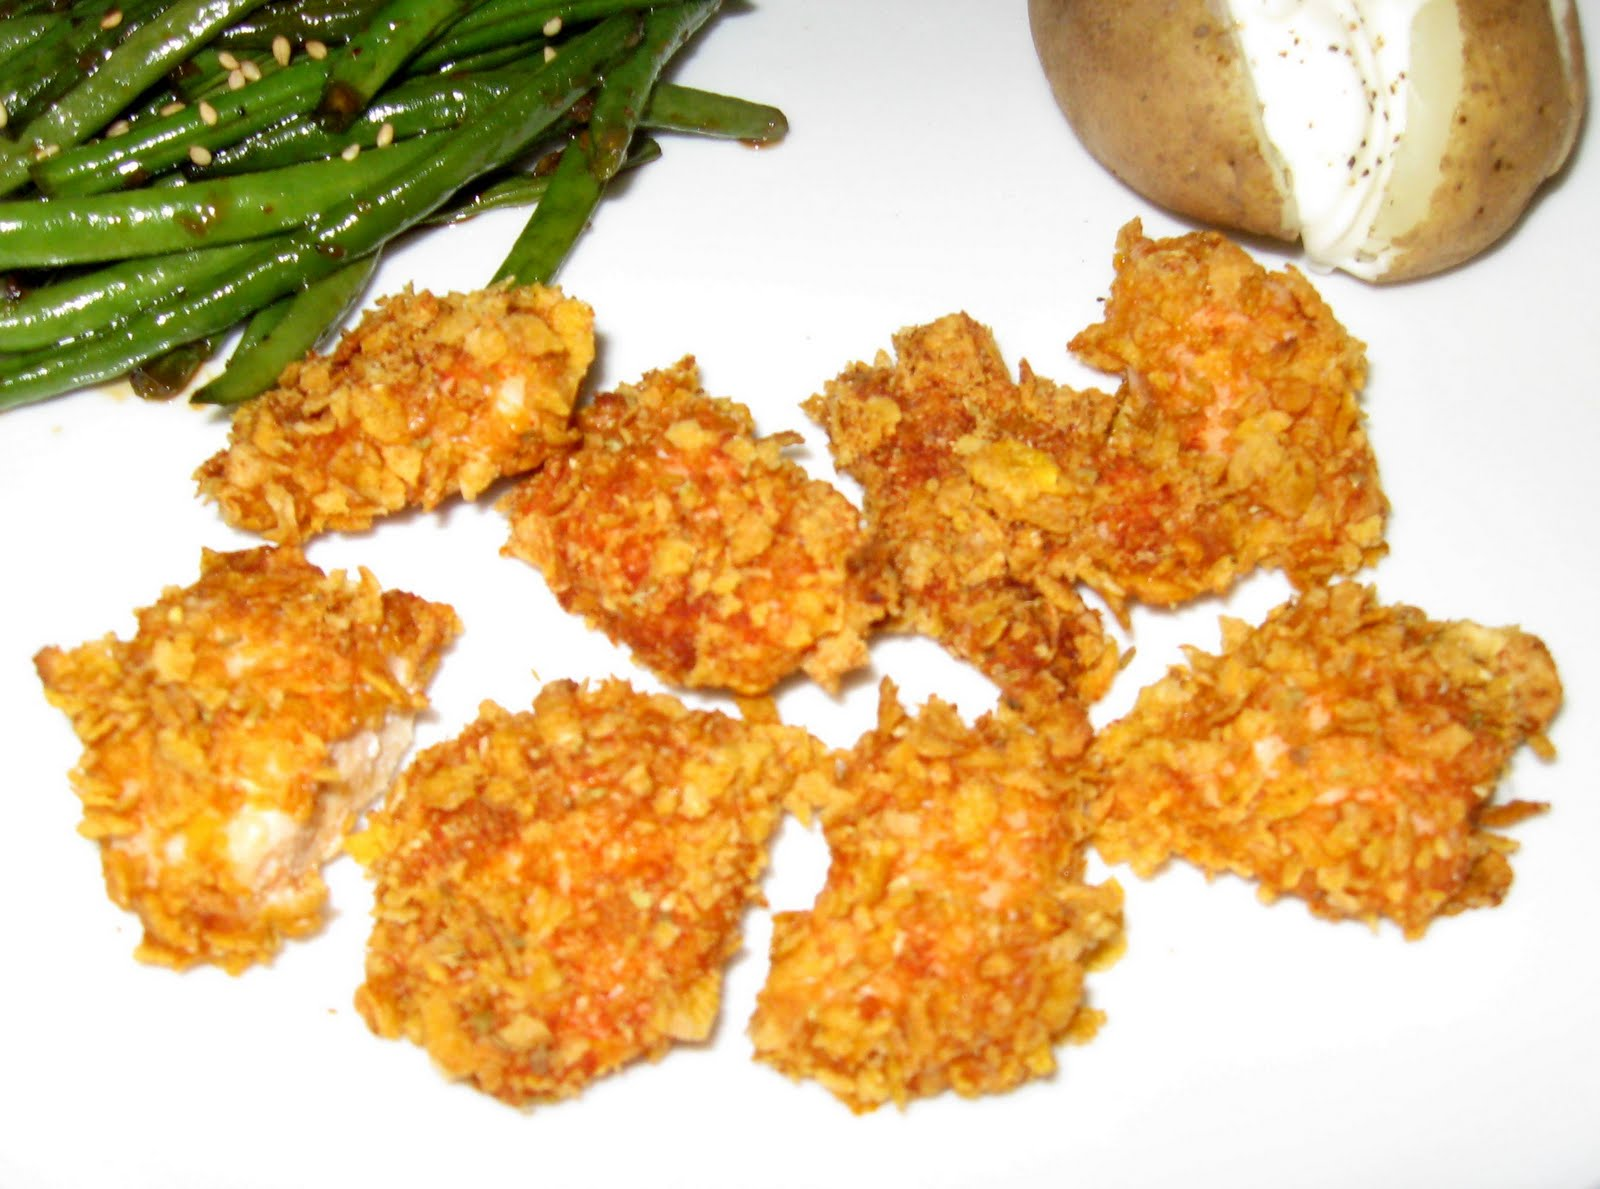 Does Dinner Healthy And Low Calorie Crispy Baked Chicken Nuggets